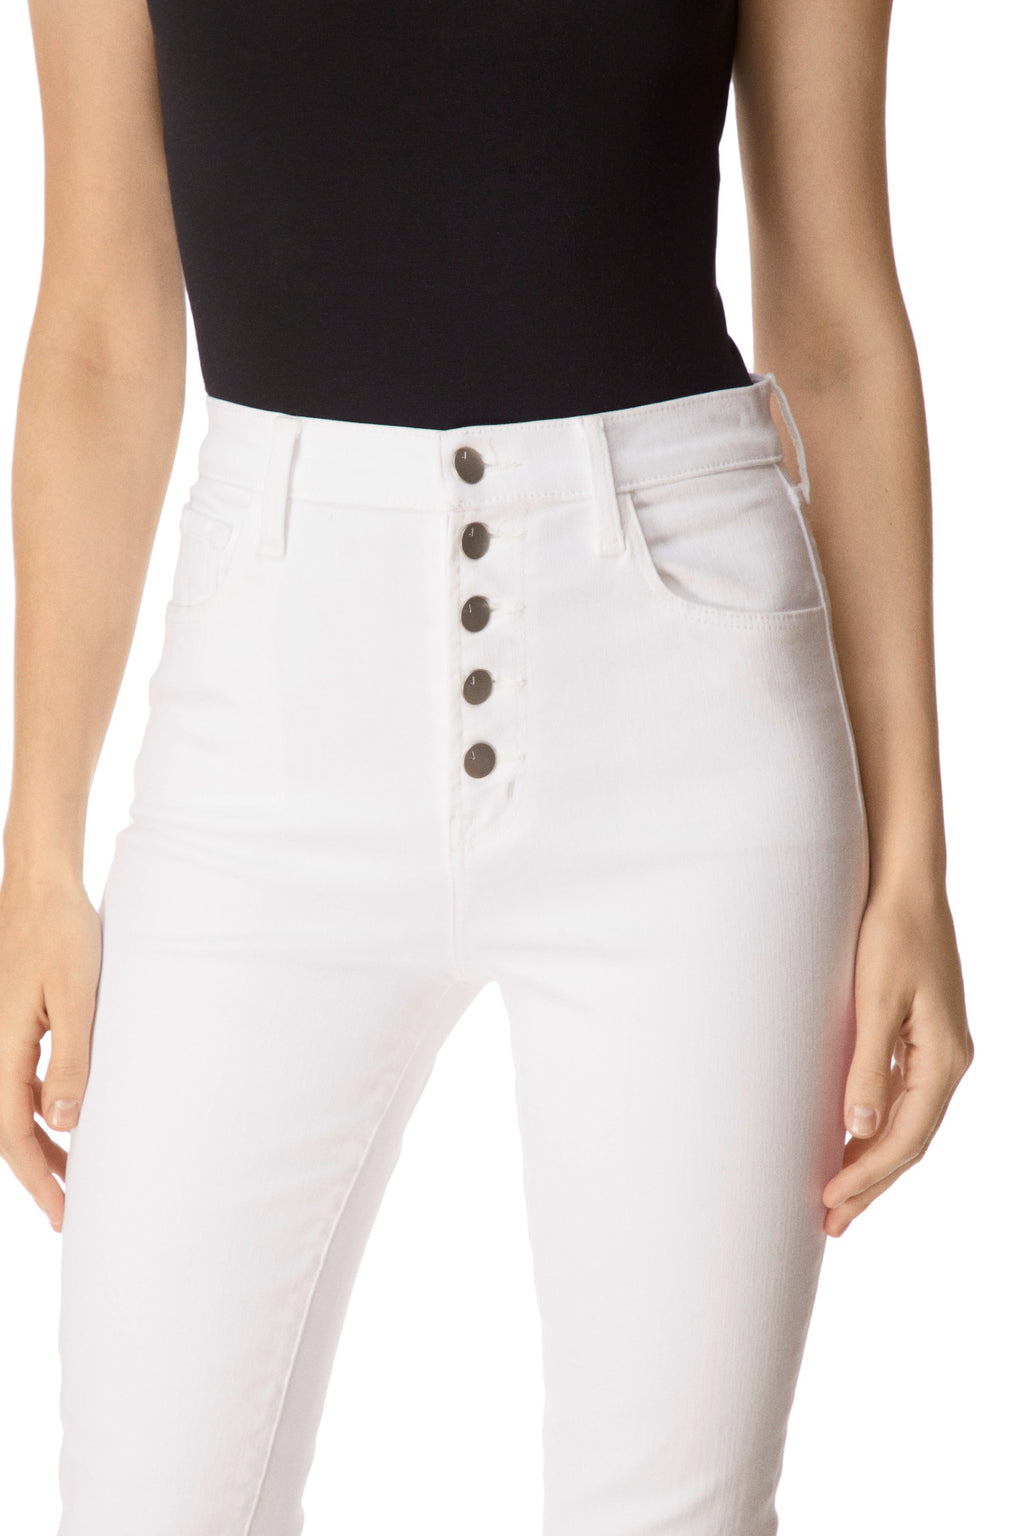 Buy Lillie High Rise Cropped Skinny Pants from J BRAND at paya boutique